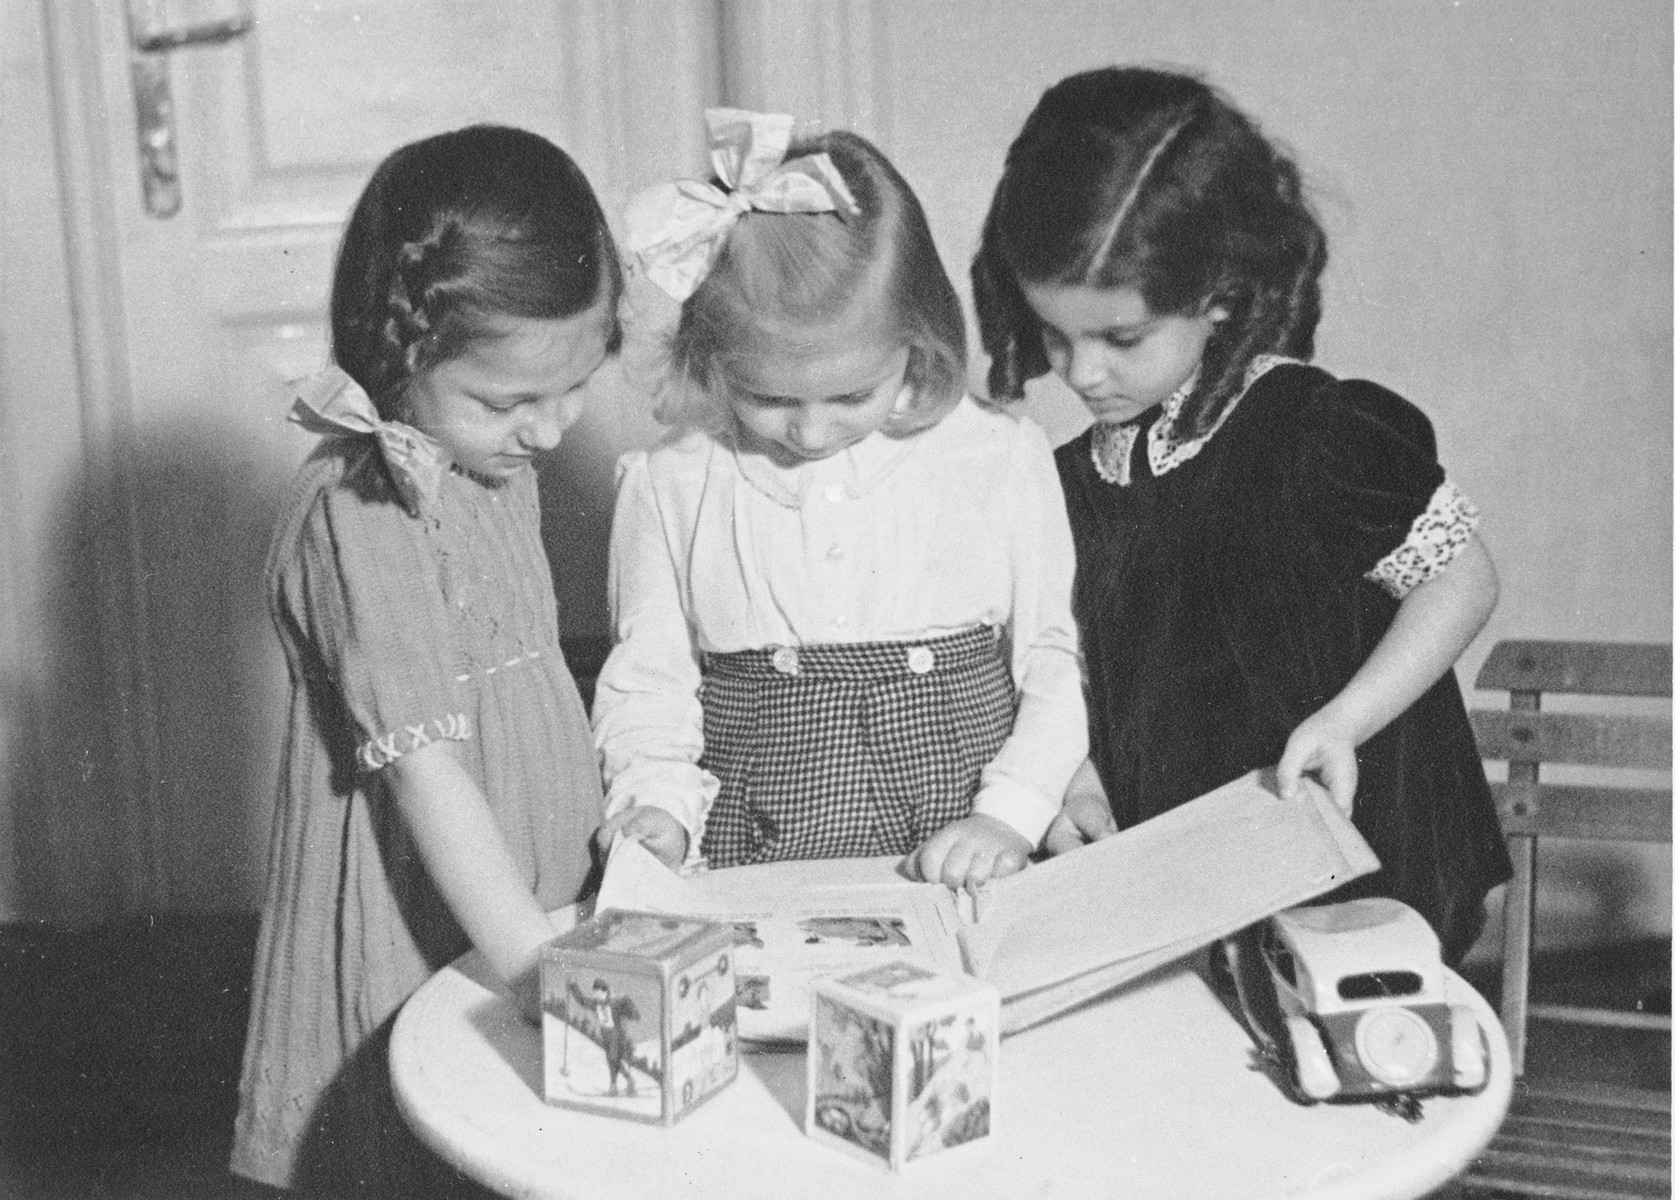 Three Jewish preschool girls look at a picture book in a playroom.  Pictured from left to right are: Judit Schichtanz, Marika Tusak and Susi Lieber.